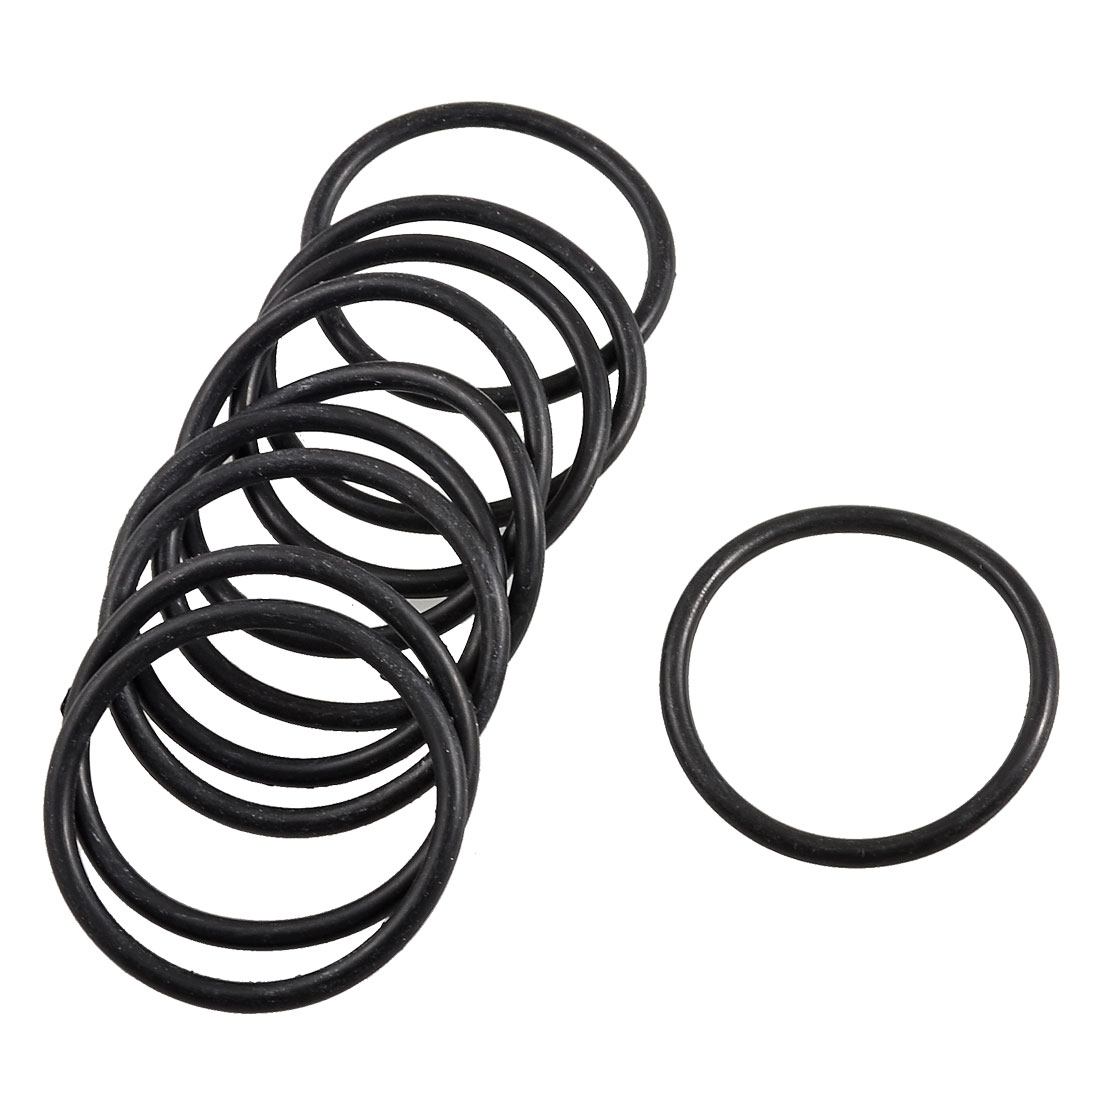 10 Pcs 48mm x 41mm x 3.5mm Mechanical Black Rubber O Ring Oil Seal Gaskets